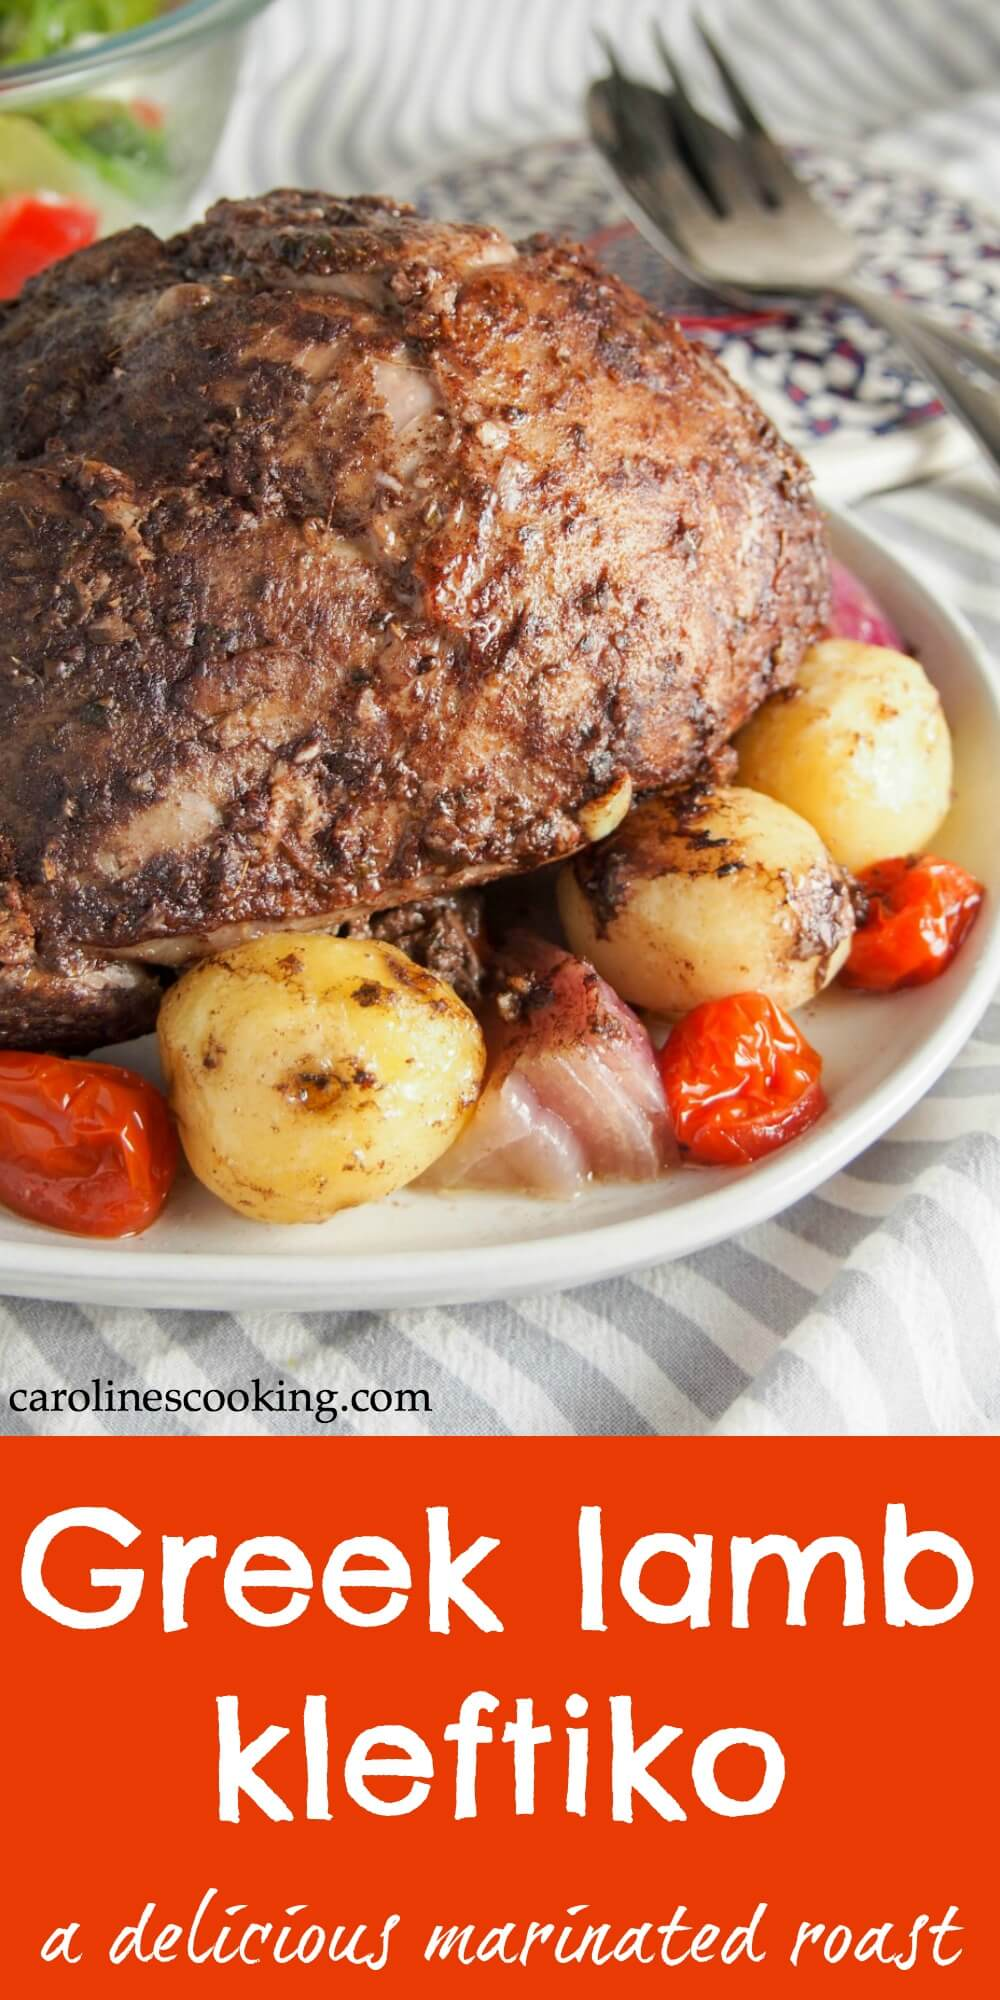 Lamb kleftiko is a classic Greek dish for good reason. It takes a little time, but it's hands off cooking and is easy to make. The marinade adds a lovely layer of flavor to this roast that's great for serving a crowd. A delicious Mediterranean meal. #lamb #Greekfood